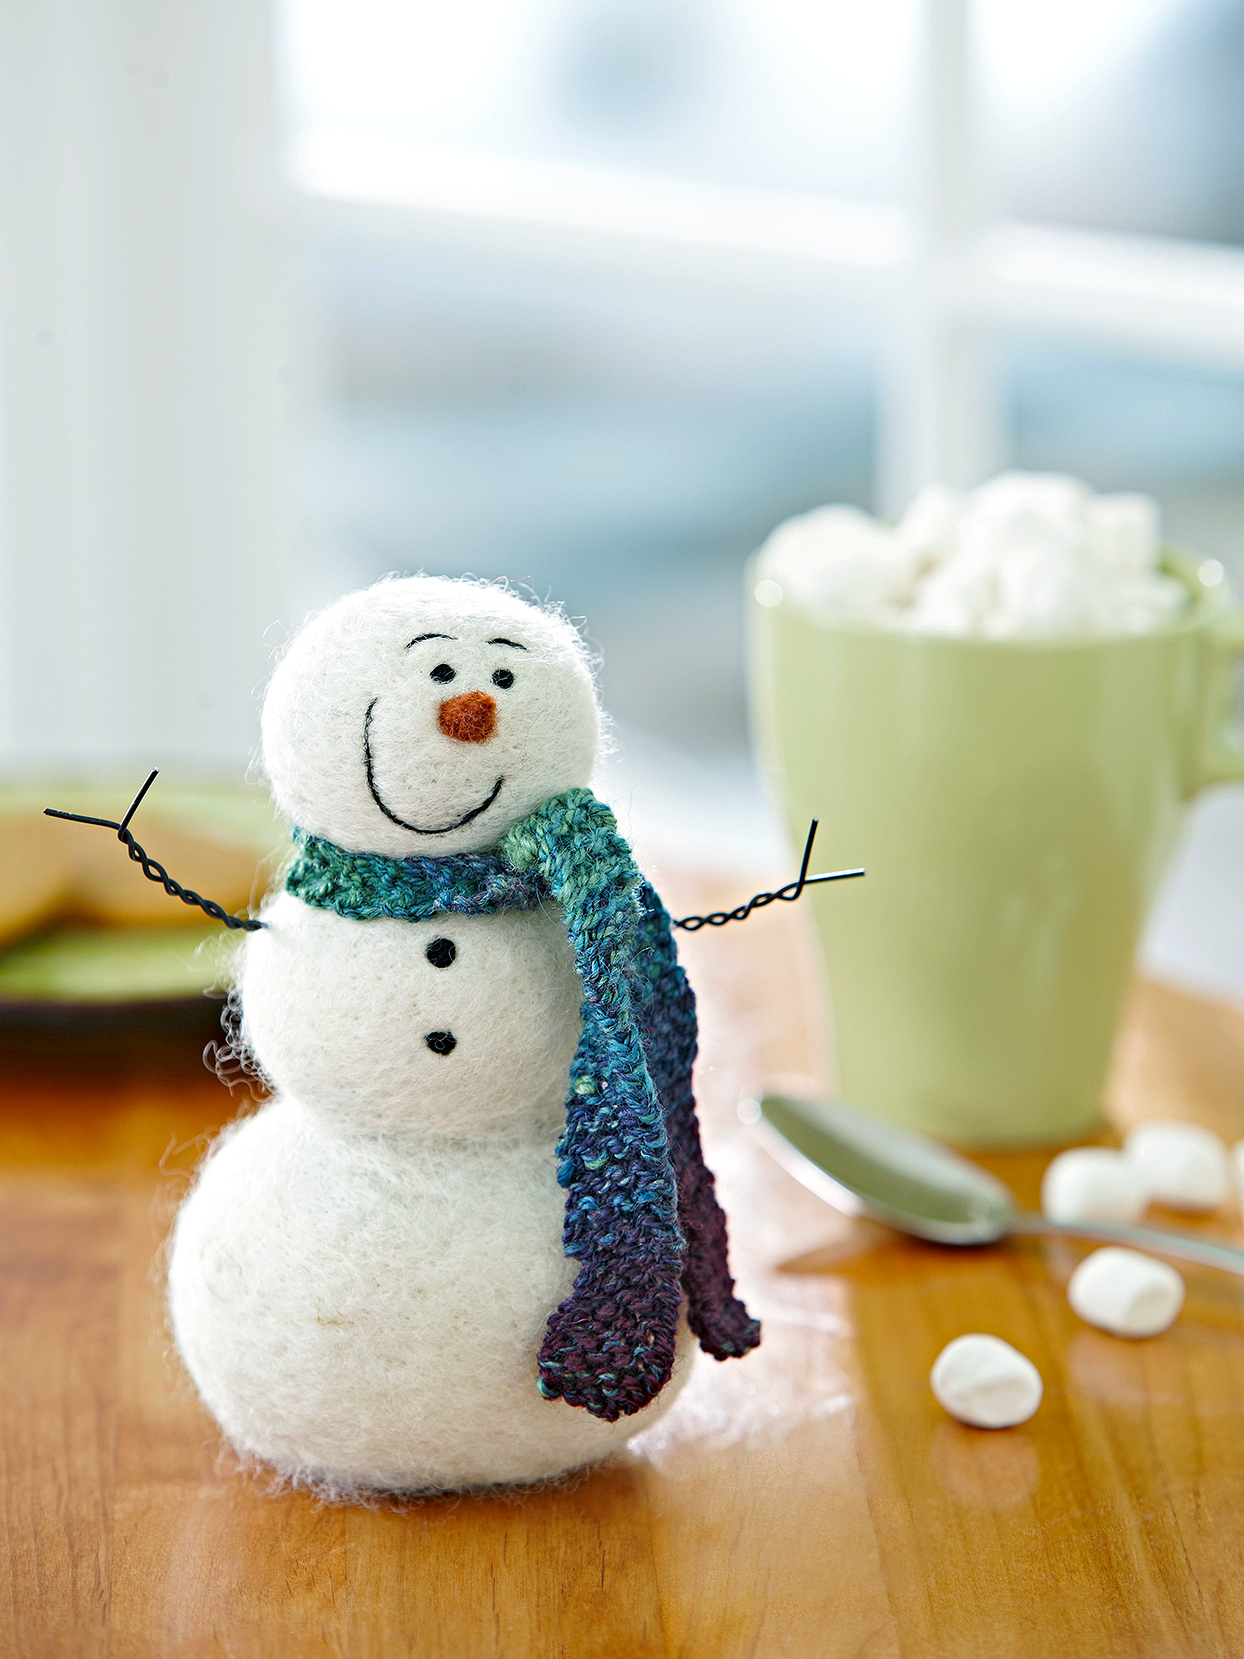 white smiling felted snowman with scarf on table